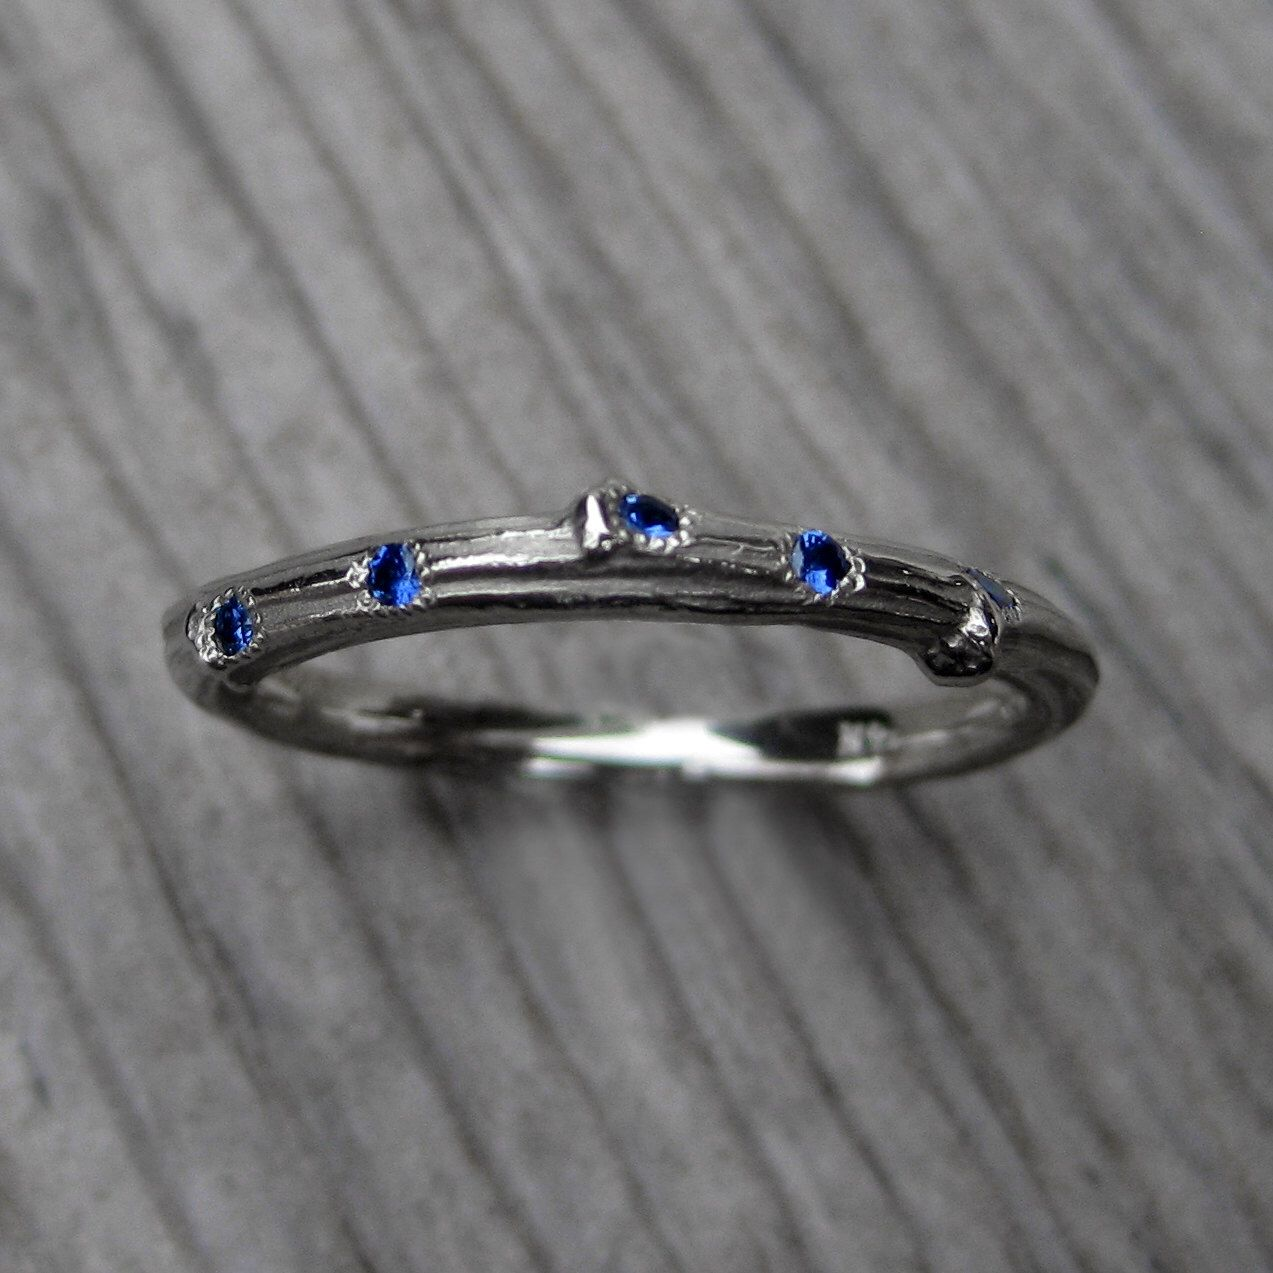 Blue Sapphire Branch Eternity Wedding Band: White, Yellow, or Rose Gold, 11 Sapphires by KristinCoffin on Etsy https://www.etsy.com/listing/181247932/blue-sapphire-branch-eternity-wedding